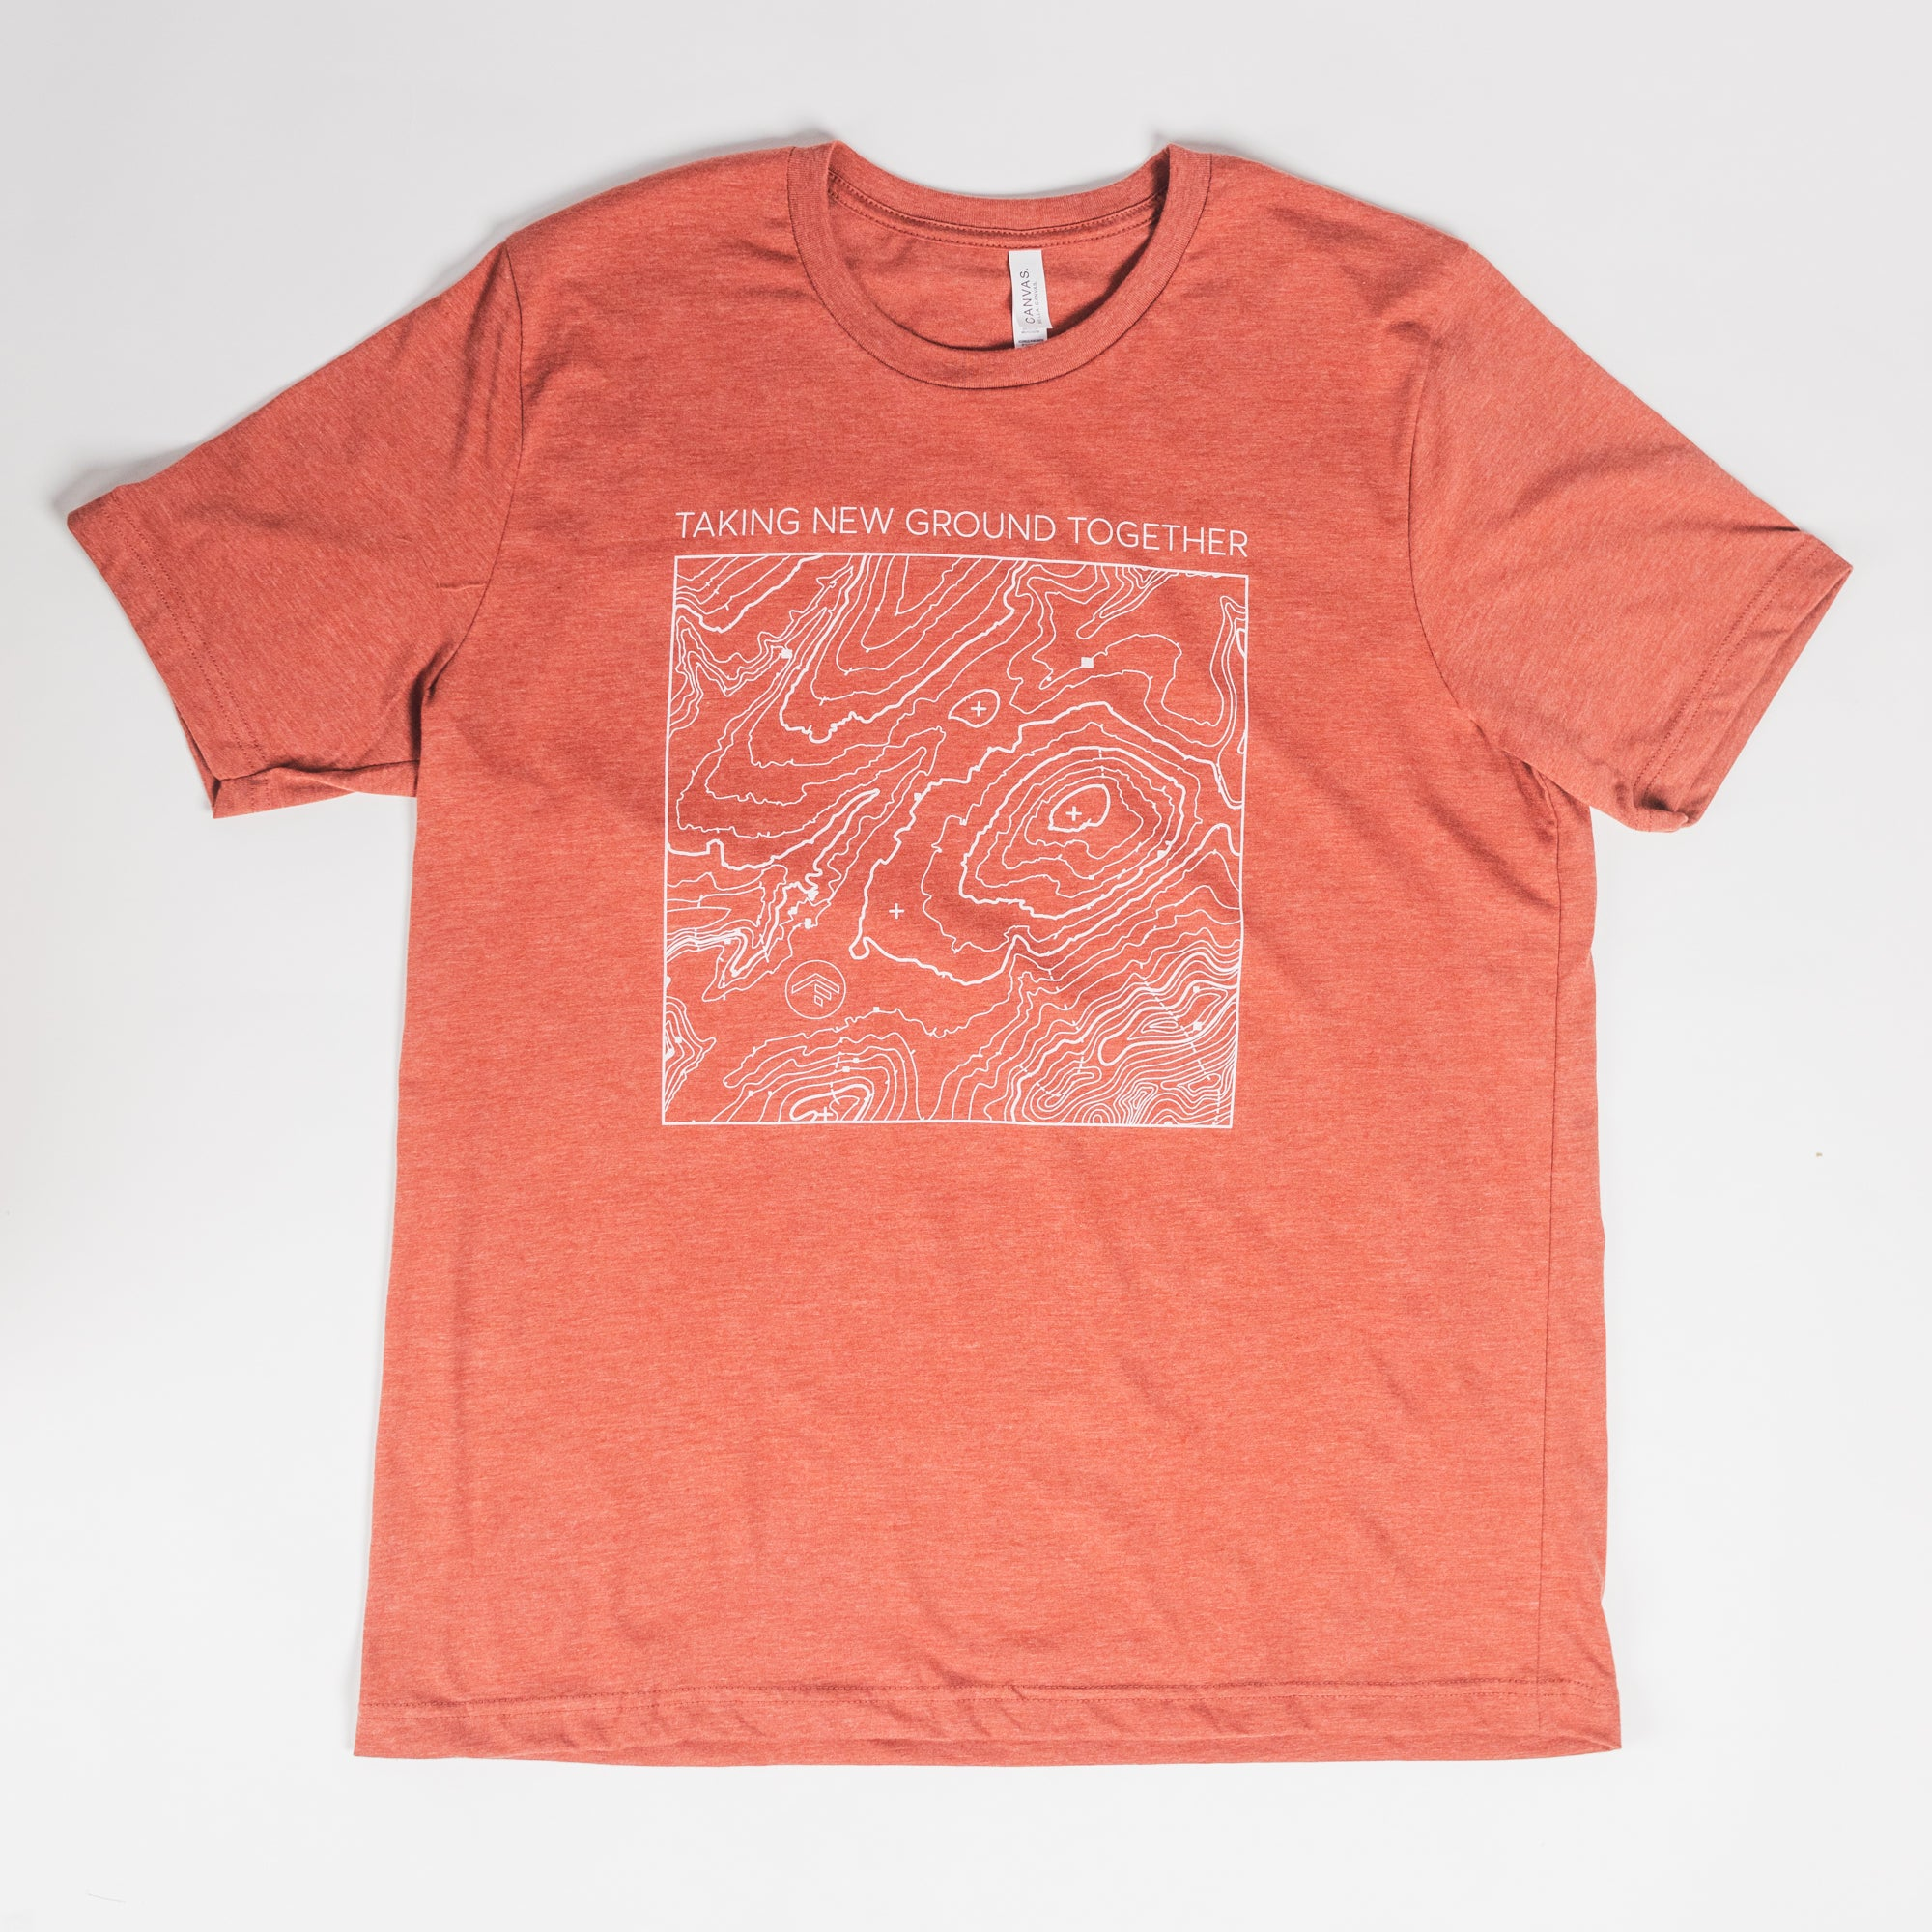 Topography - Short Sleeve Shirt